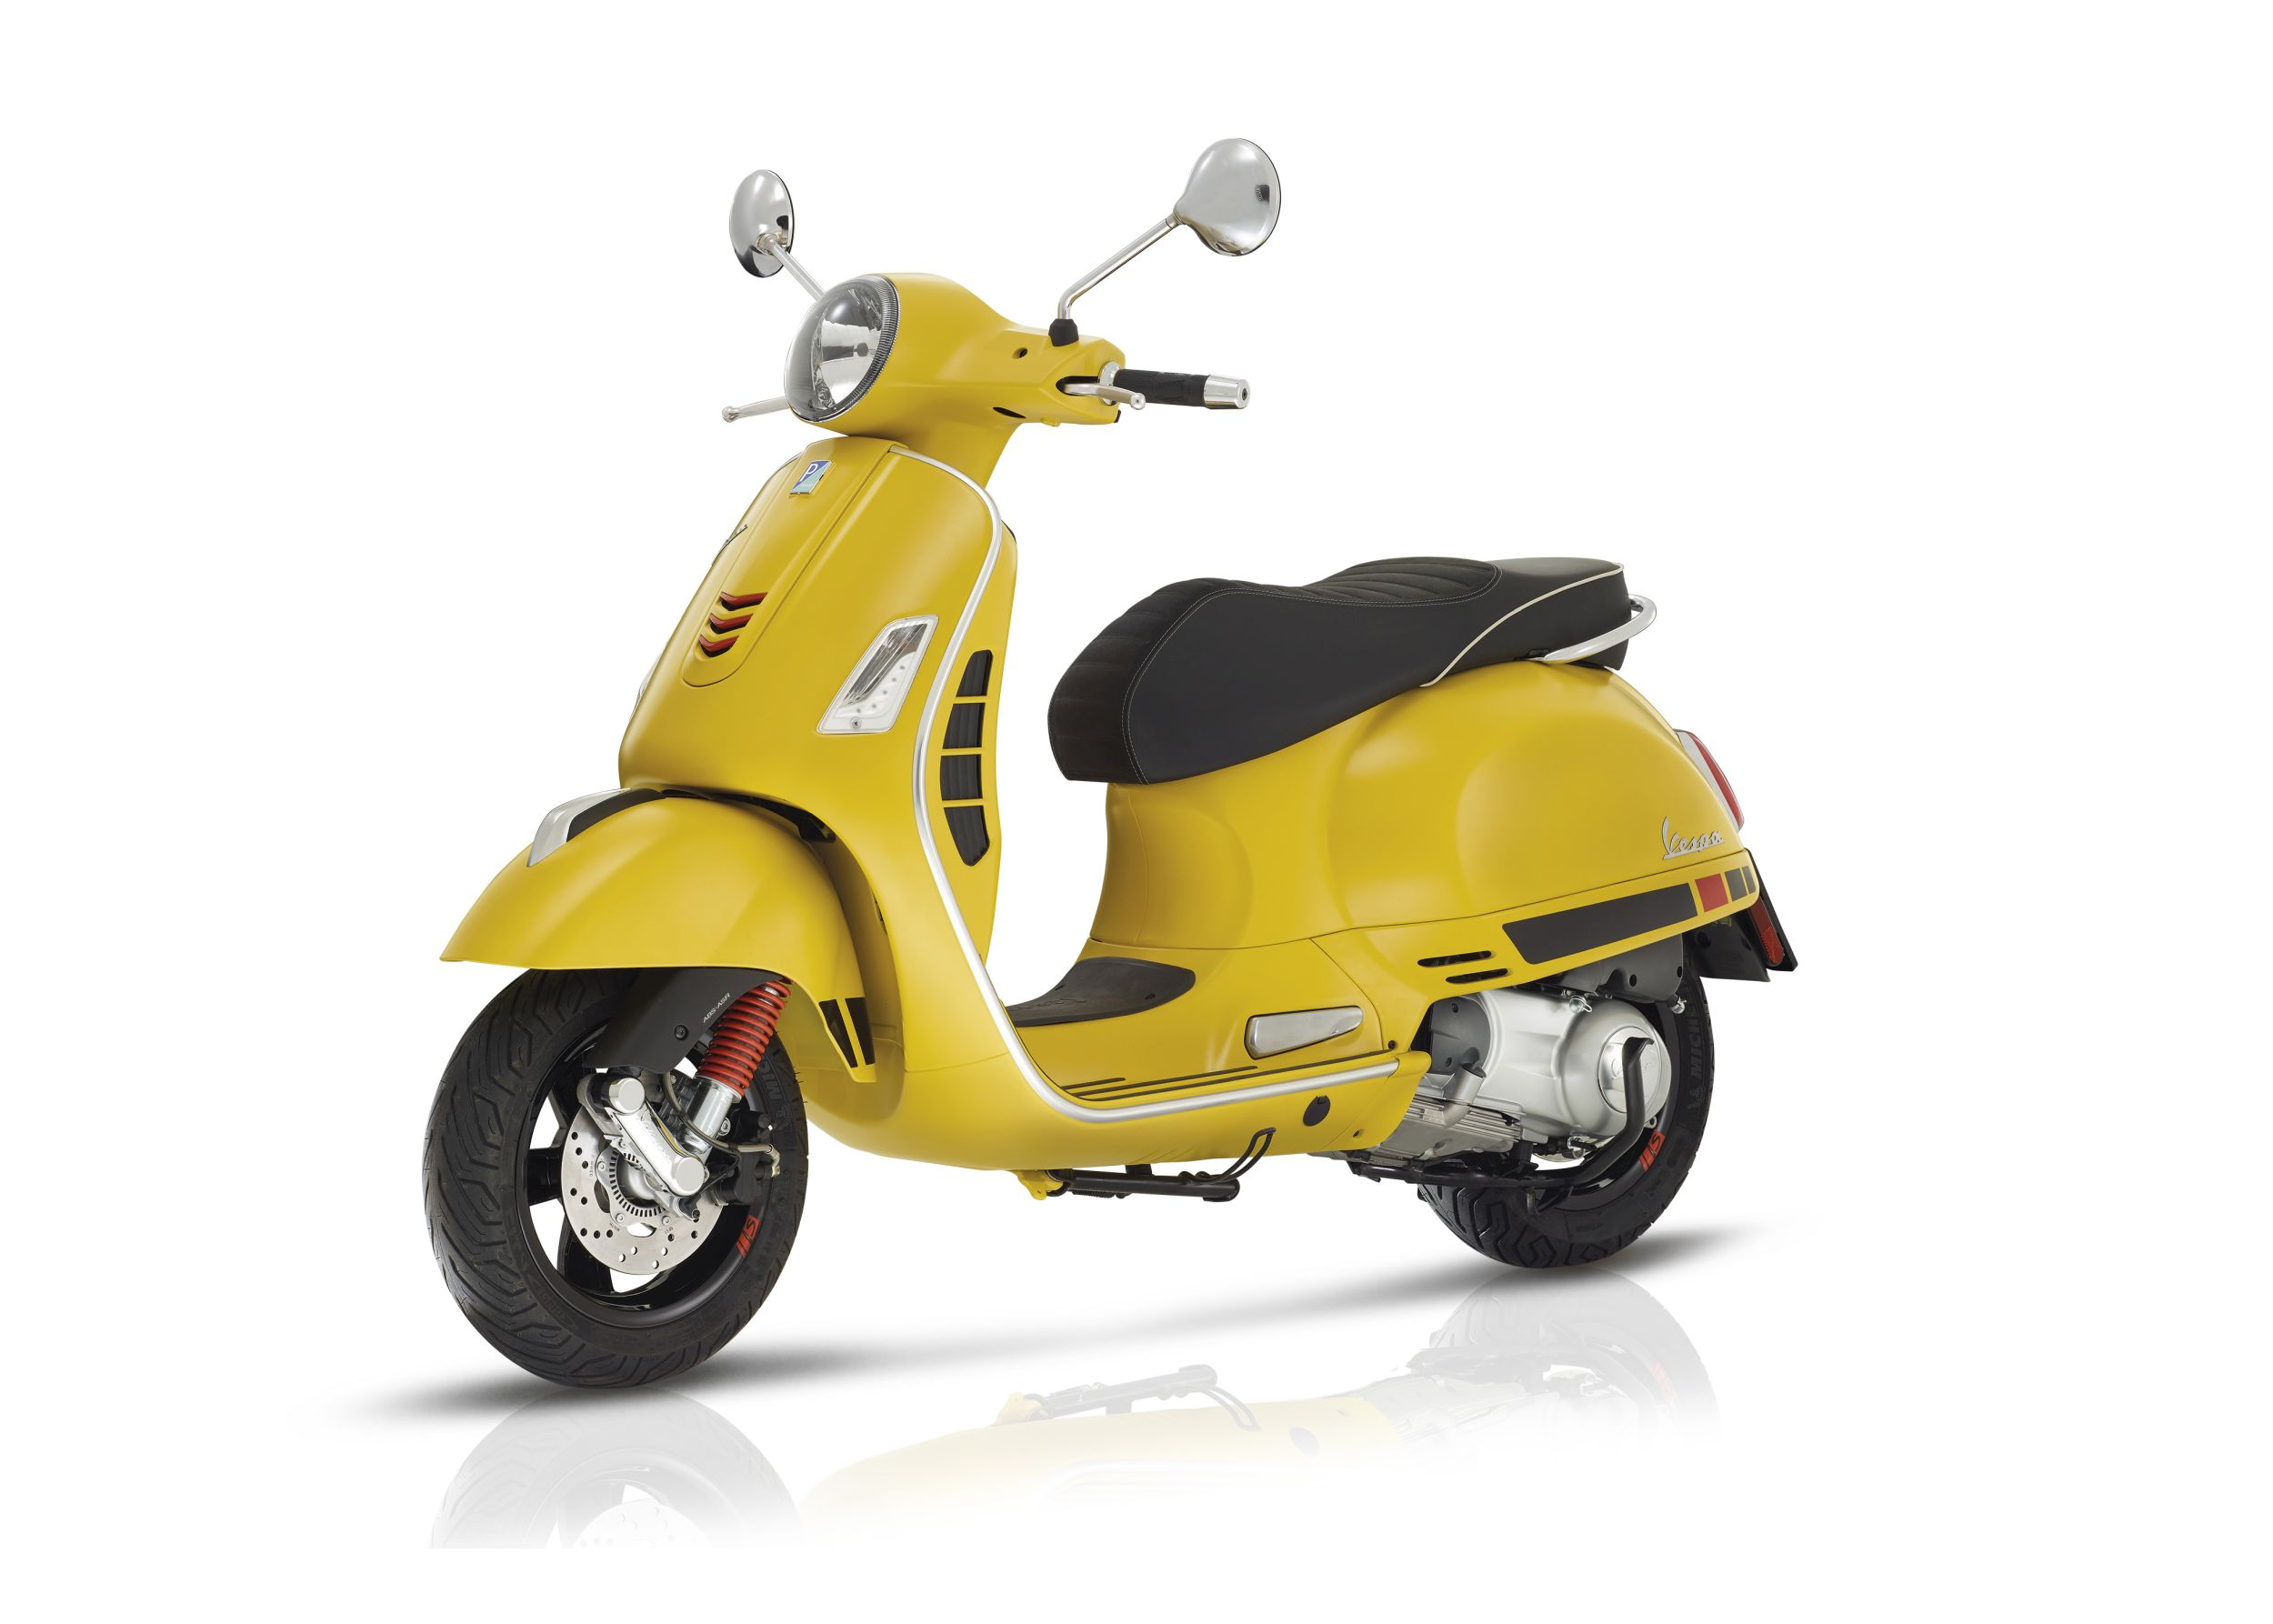 vespa gts 300 i e super sport all technical data of the model gts 300 i e super sport from vespa. Black Bedroom Furniture Sets. Home Design Ideas